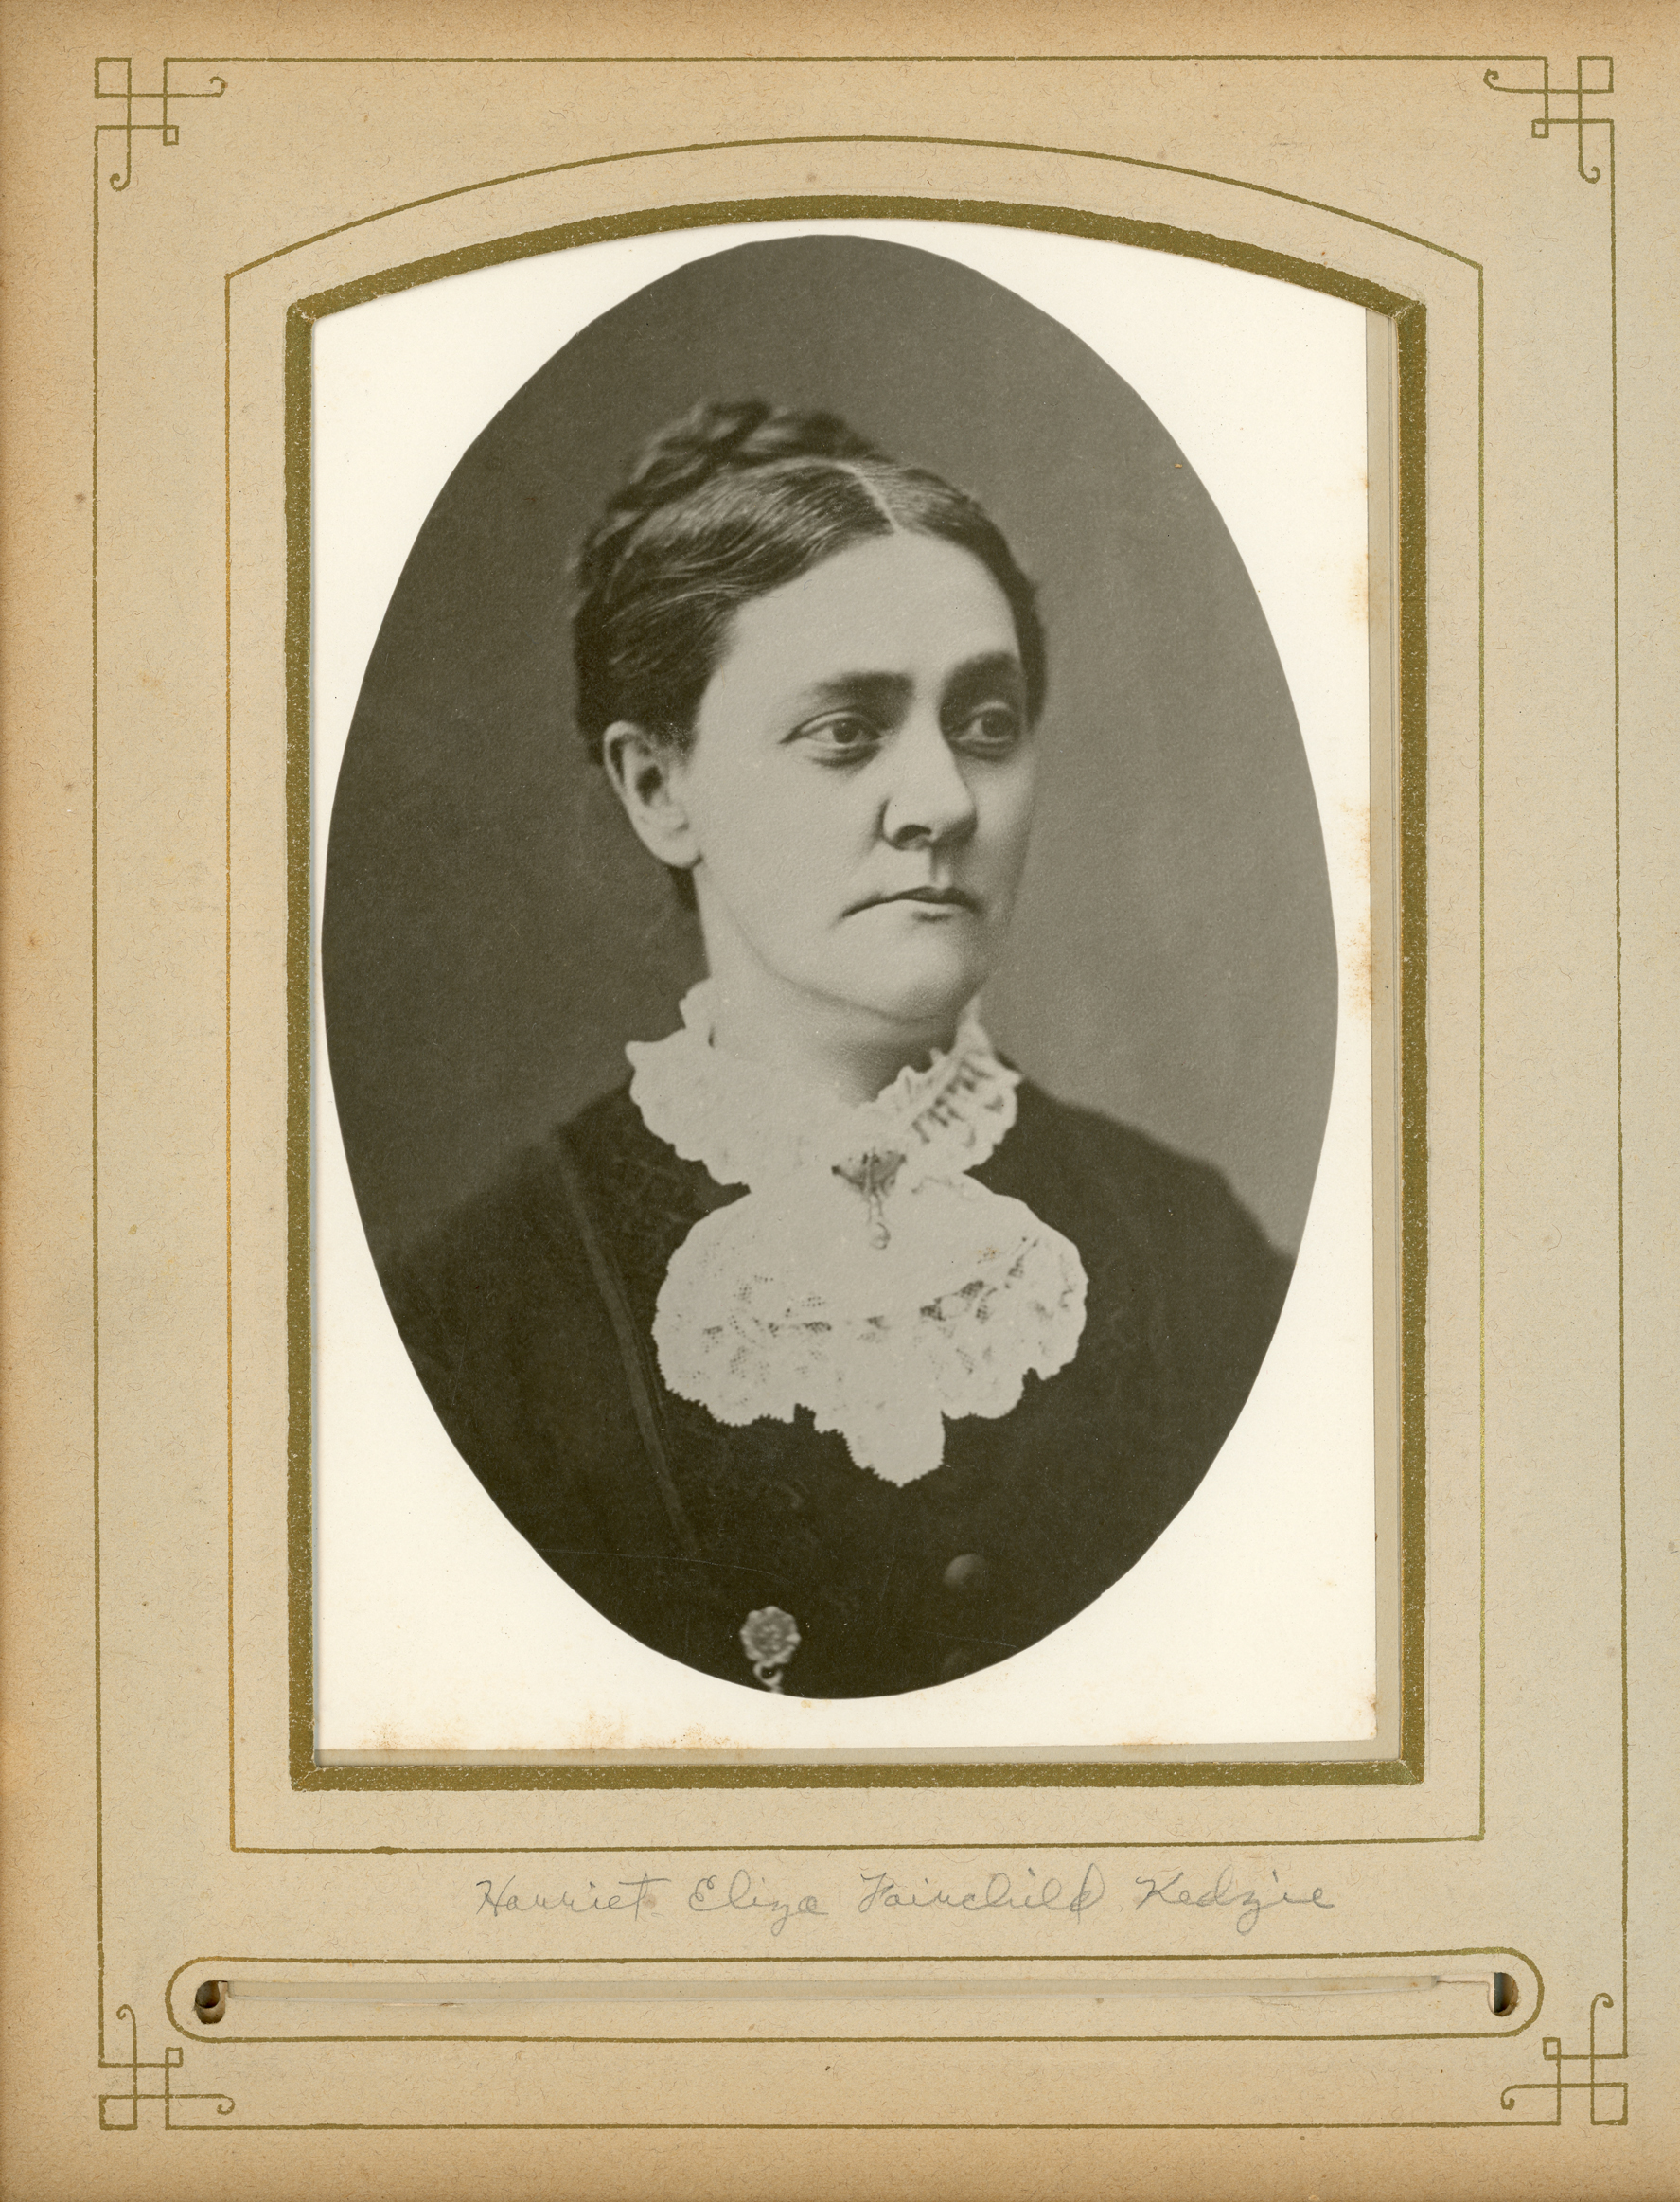 Harriet Eliza Fairchild Kedzie, undated